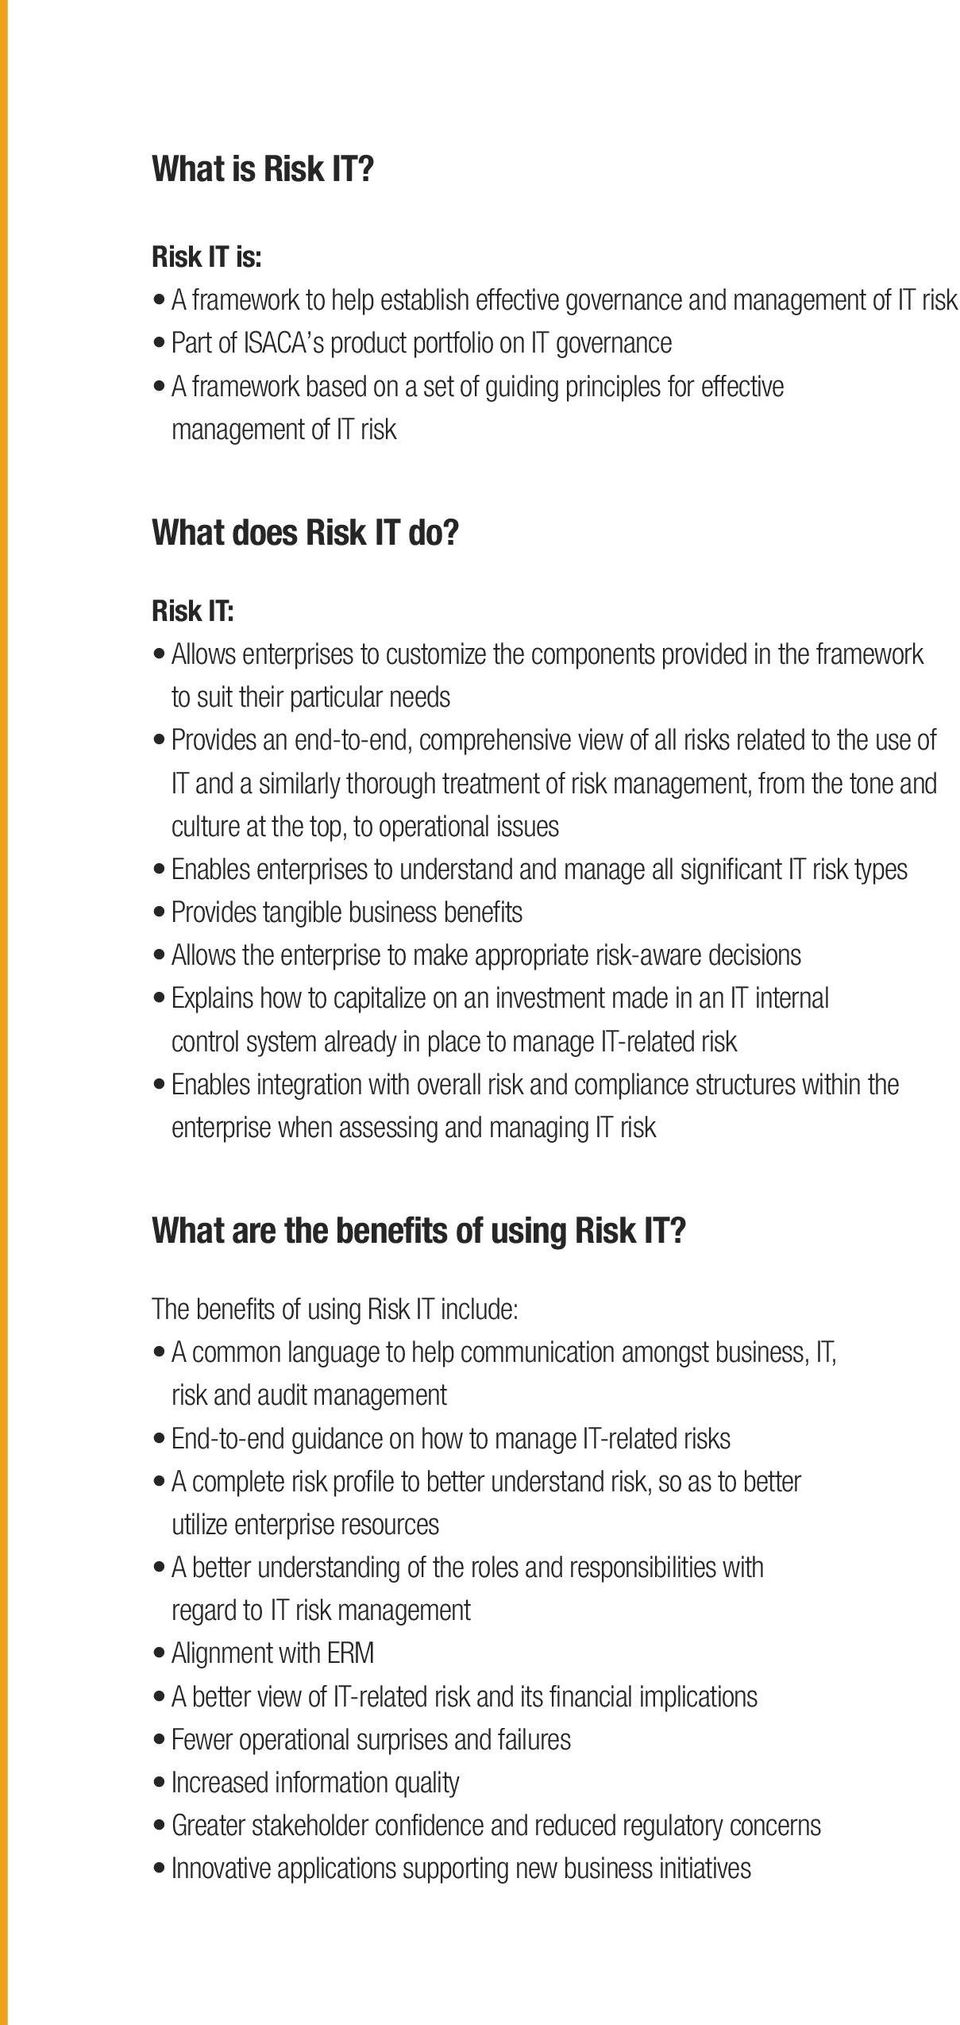 effective management of IT risk What does Risk IT do?